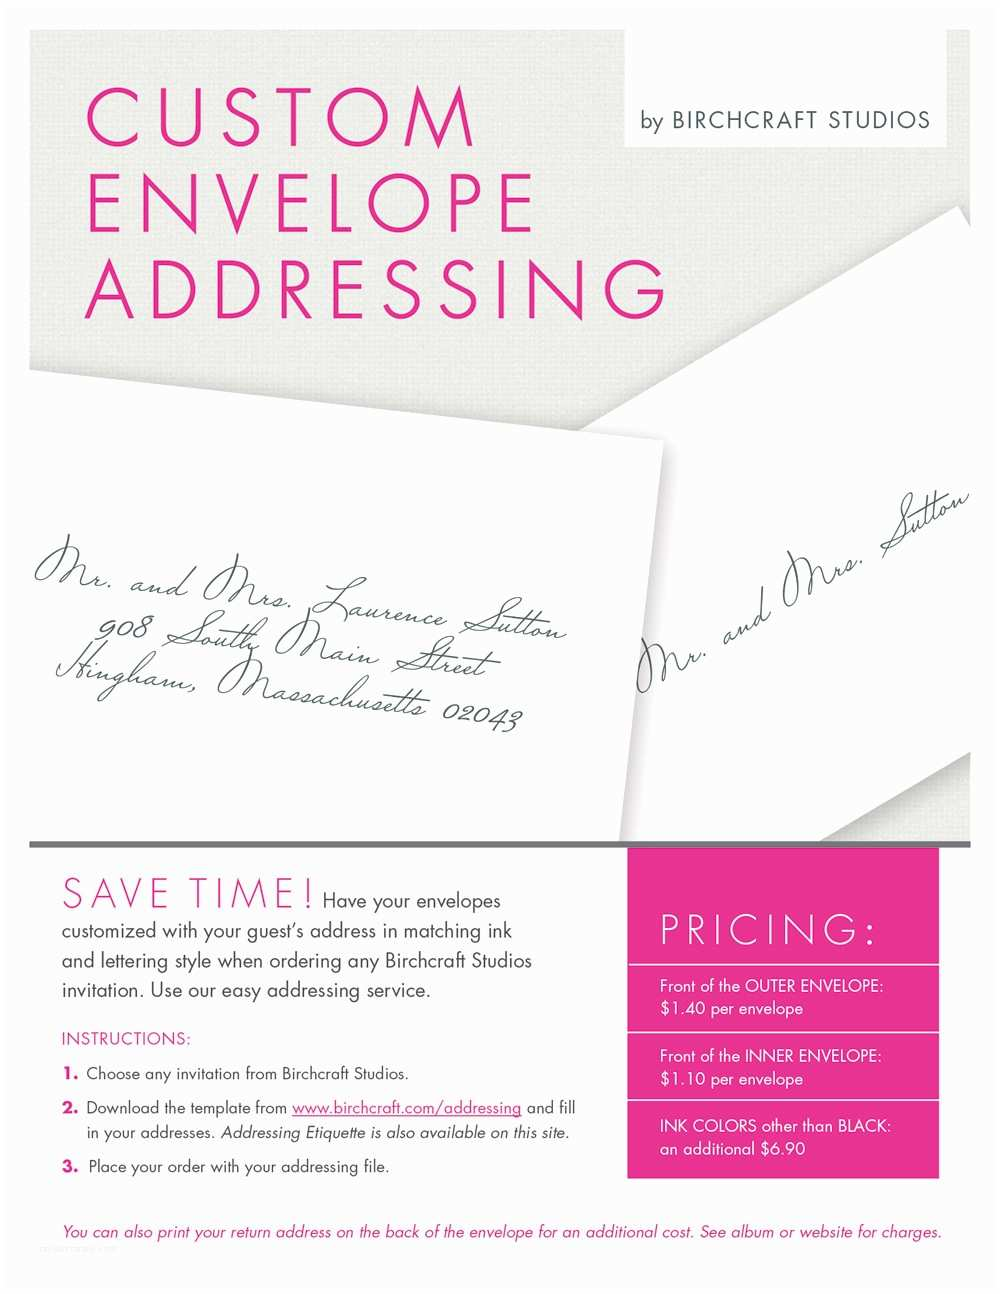 Outer Envelopes for Wedding Invitations Custom Envelope Addressing by Birchcraft Studios